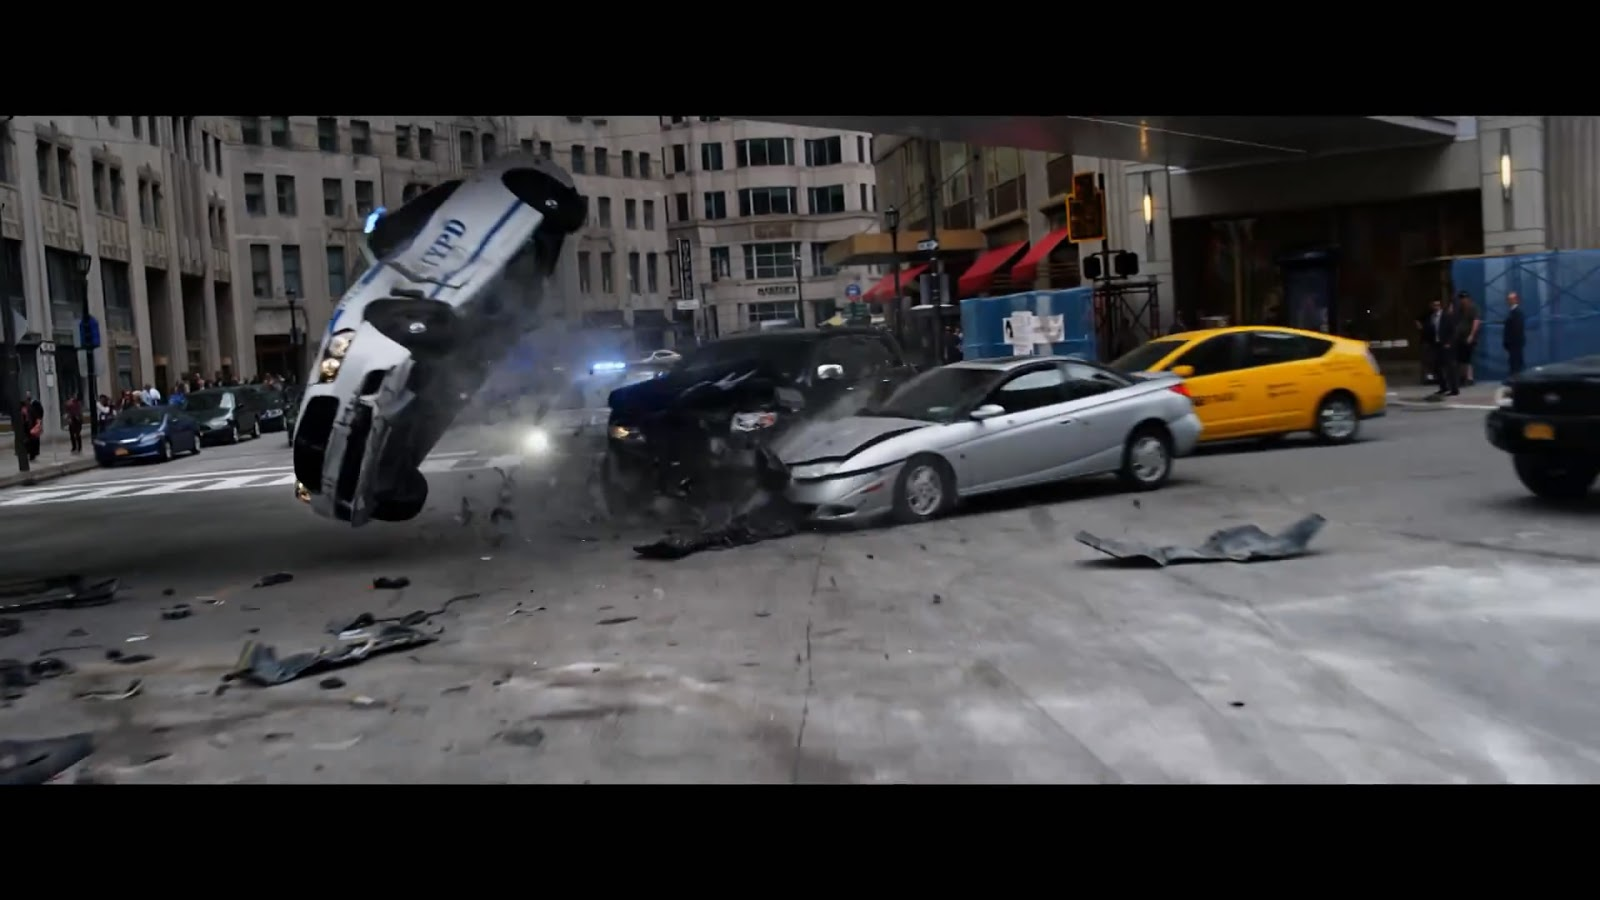 The Fate Of The Furious (2017) Screenshot HD 1080p - www.uchiha-uzuma.com